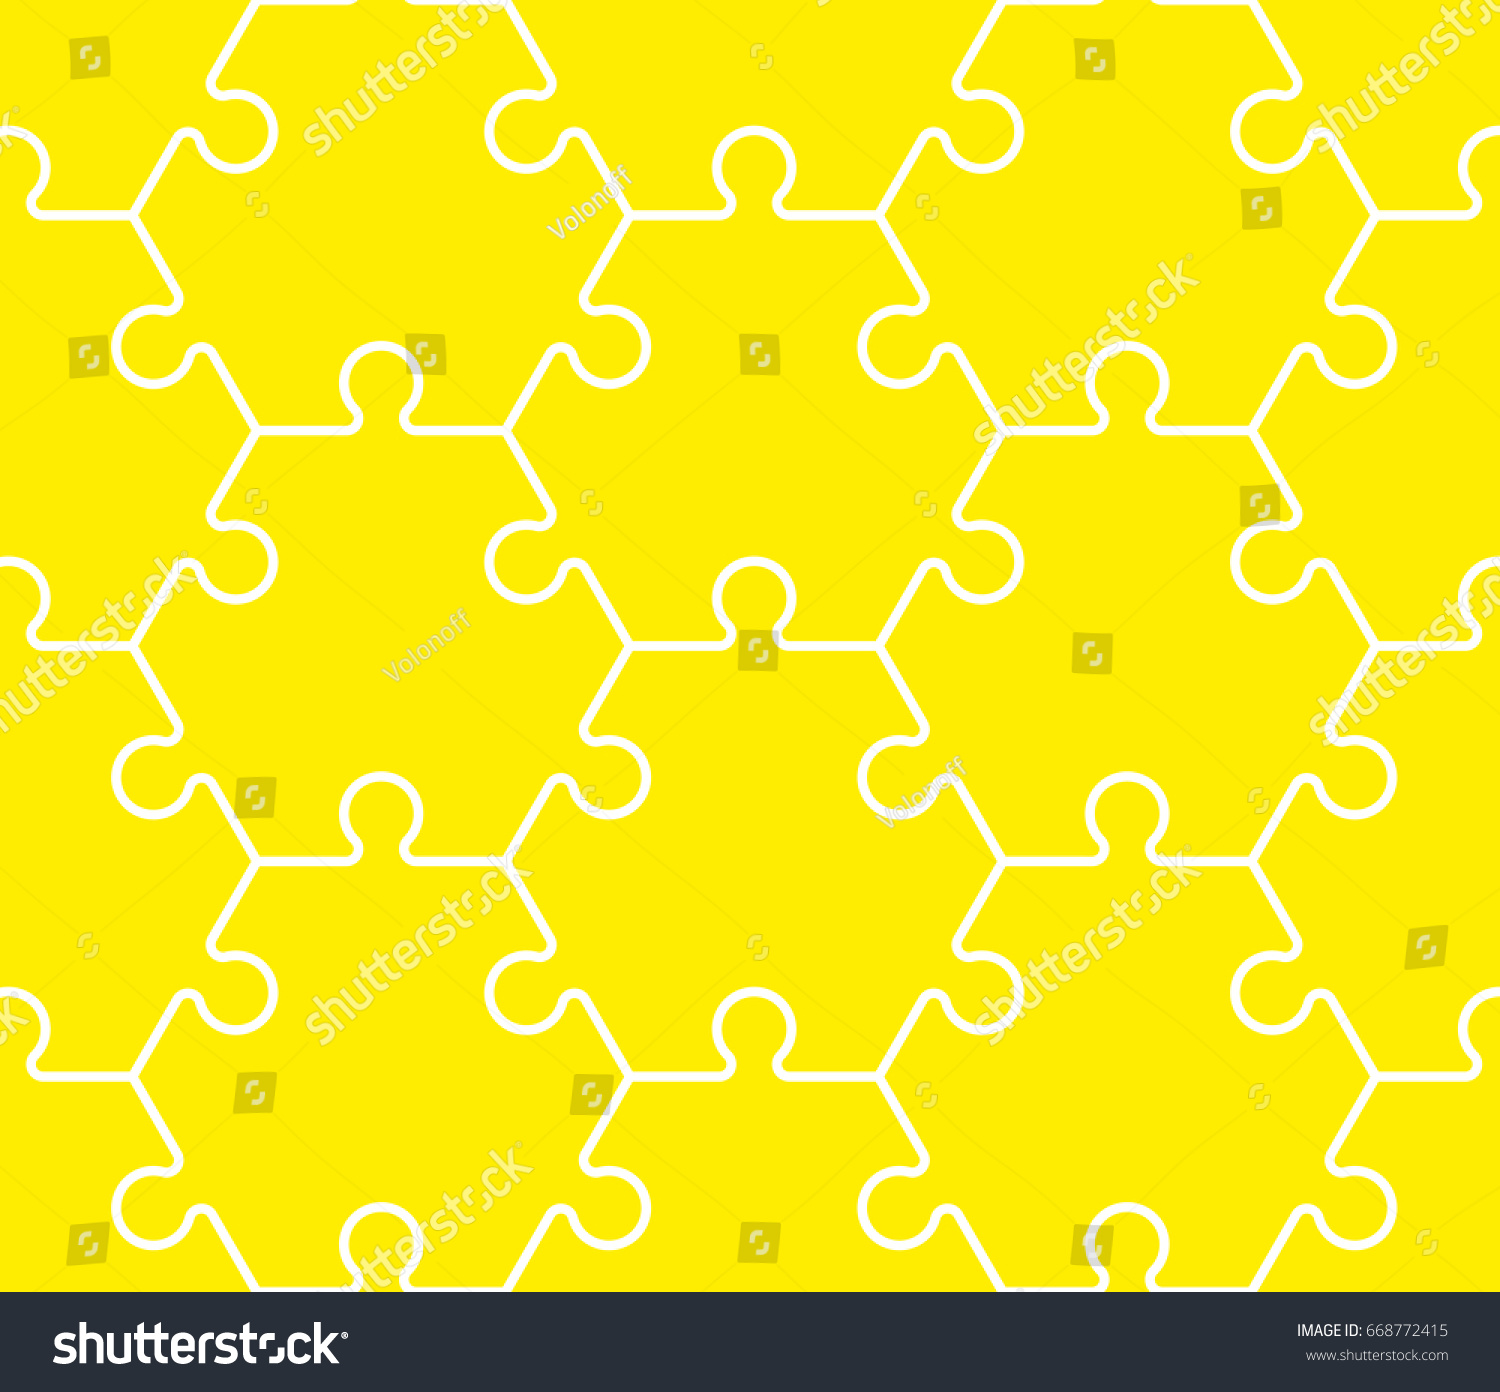 Hexagon puzzle template hexagon six piece flat puzzle round stock seamless hexahedron puzzle pattern hexagon puzzle stock vector pronofoot35fo Choice Image